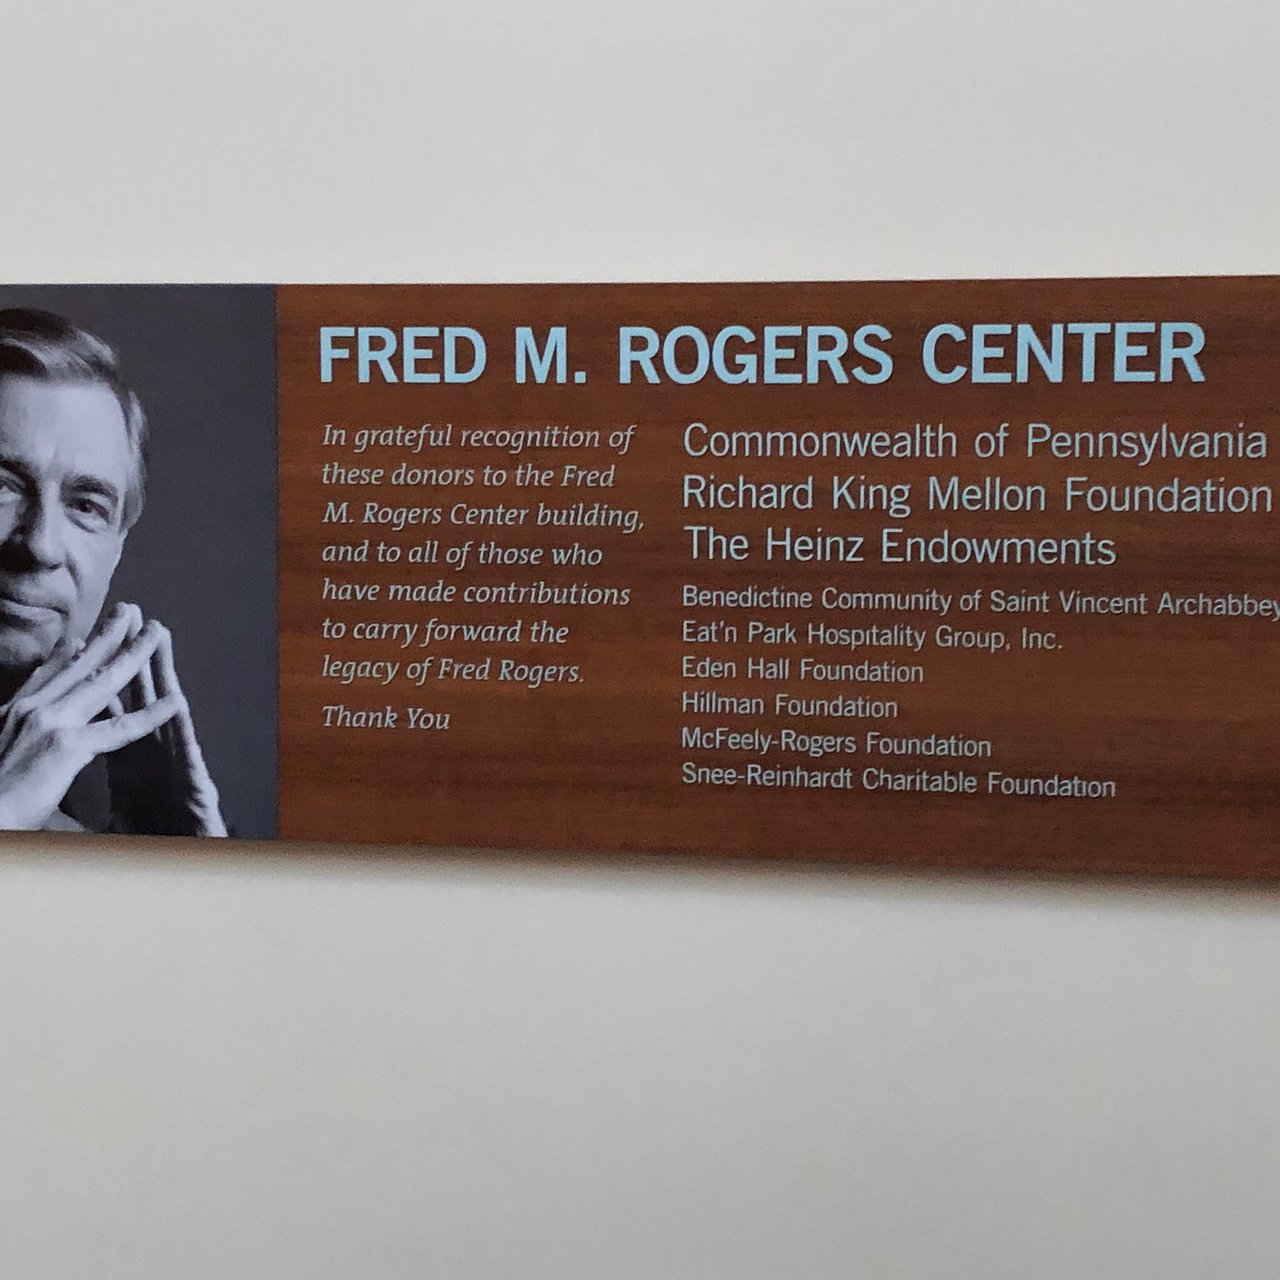 Fred Rogers Exhibit Latrobe 2020 All You Need To Know Before You Go With Photos Tripadvisor